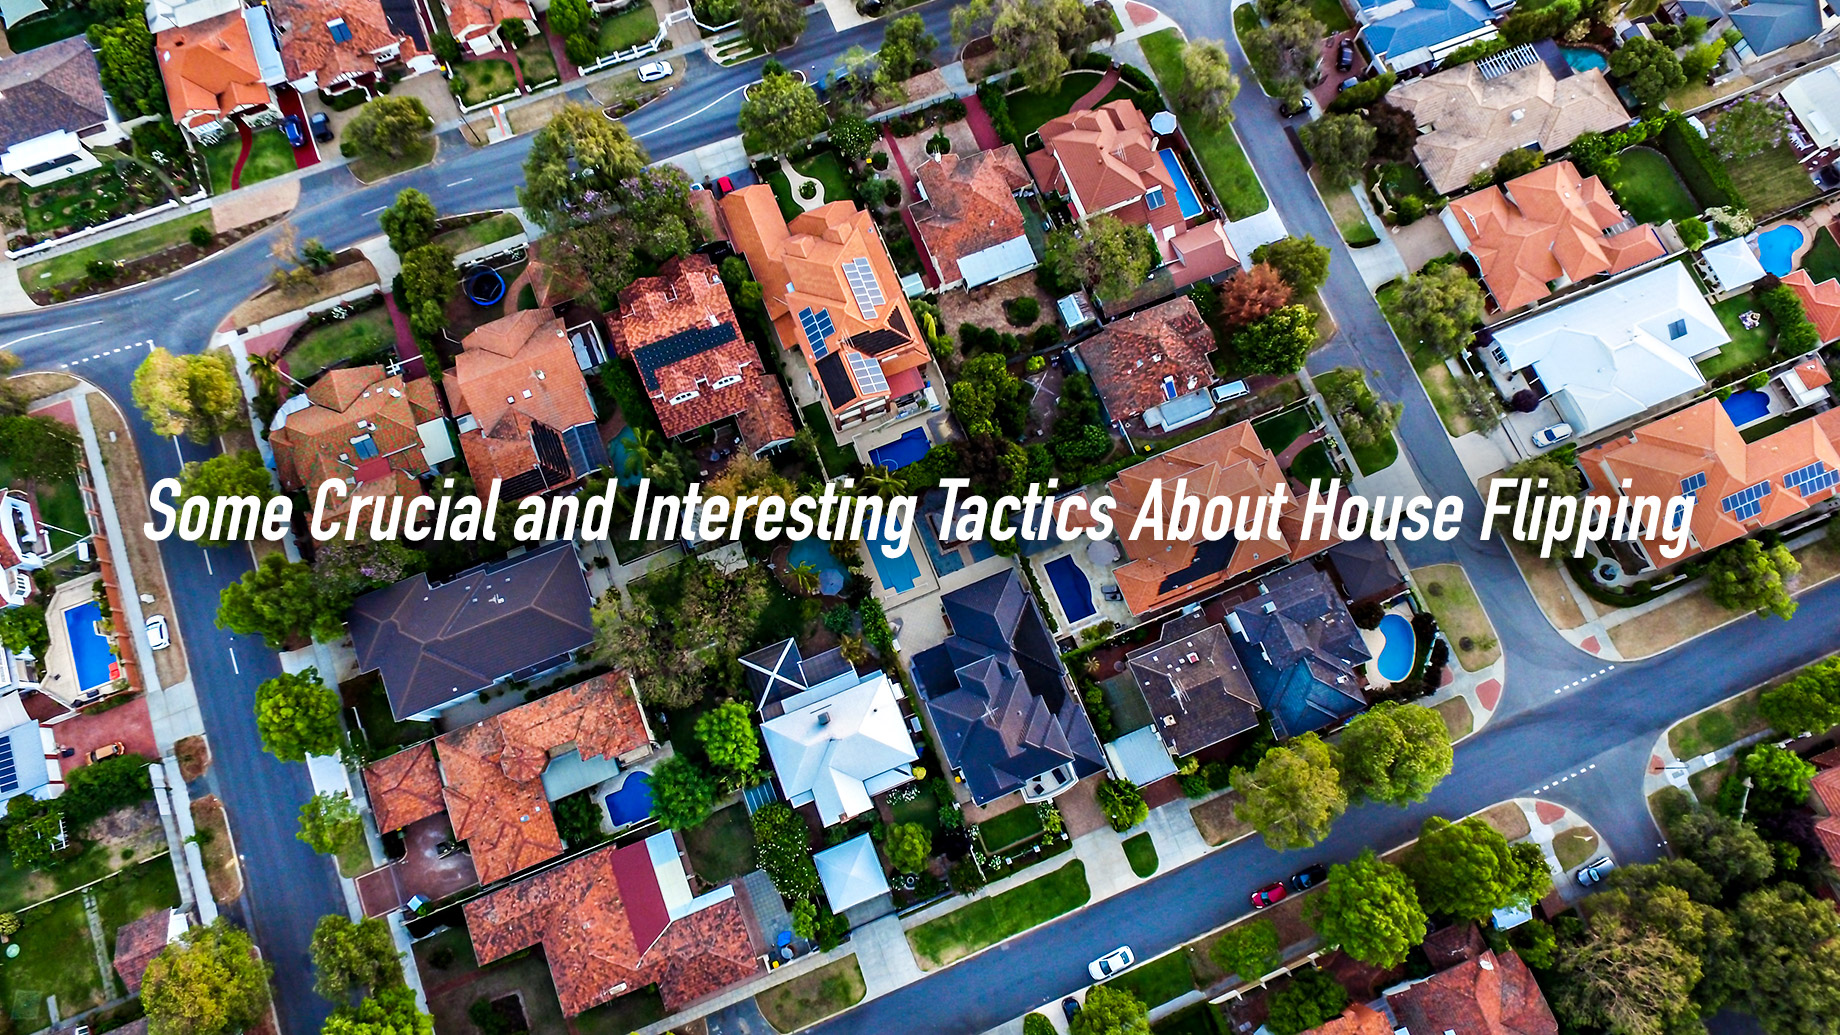 Some Crucial and Interesting Tactics About House Flipping